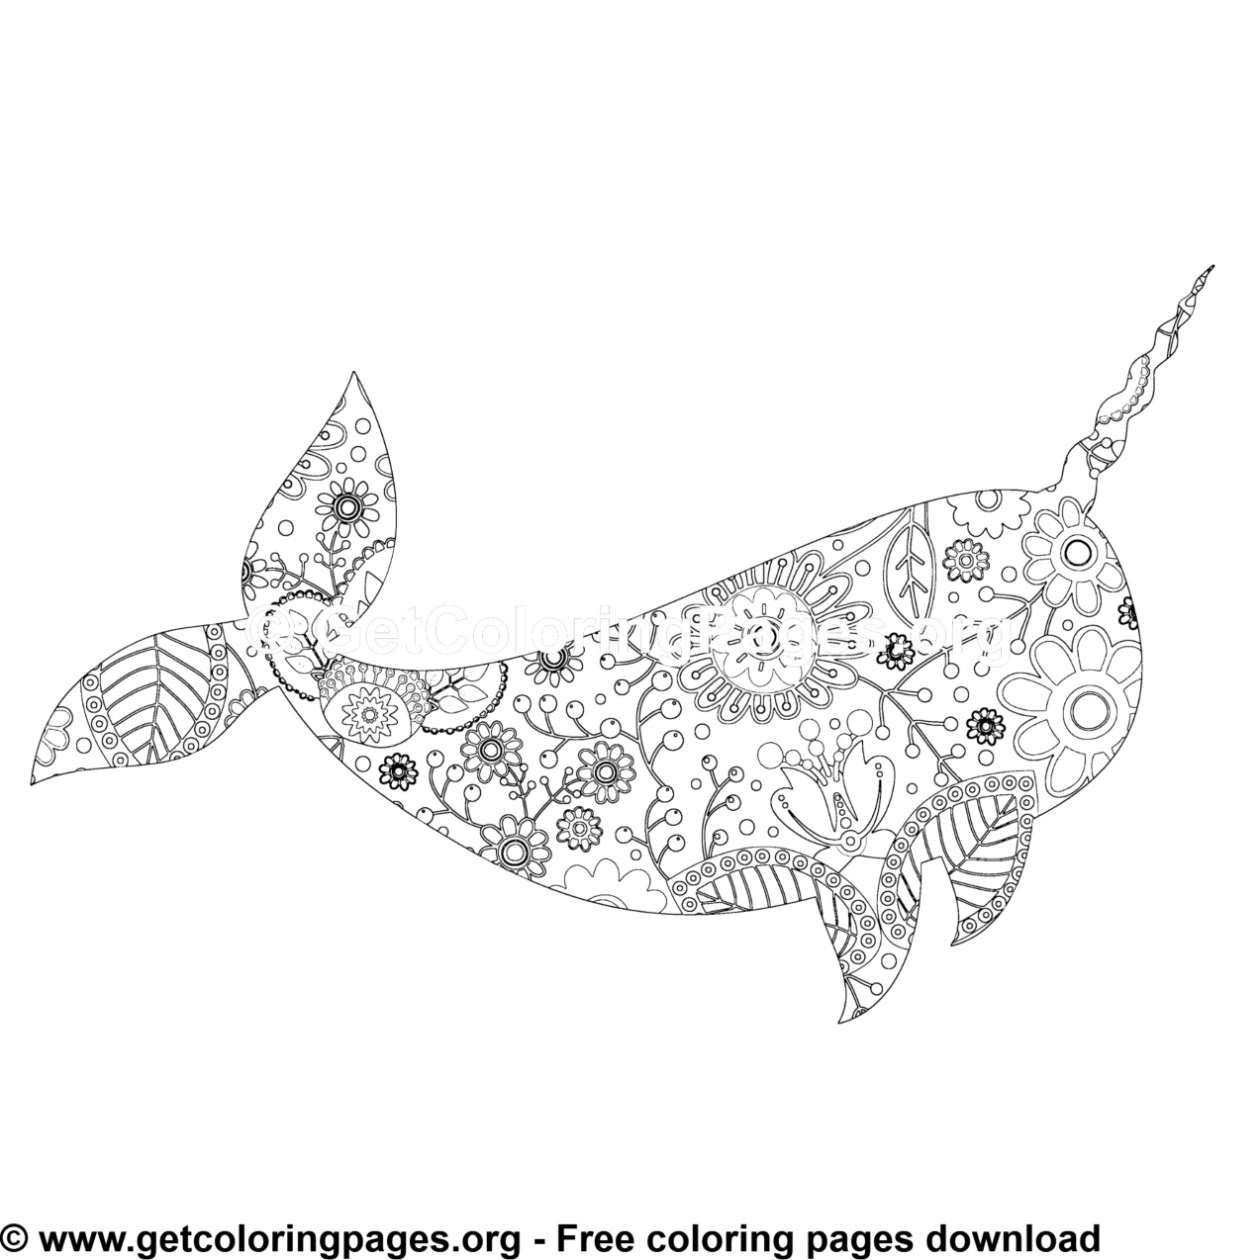 Zentangle Boho Narwhal Coloring Pages Coloring Pages Color Free Coloring Pages